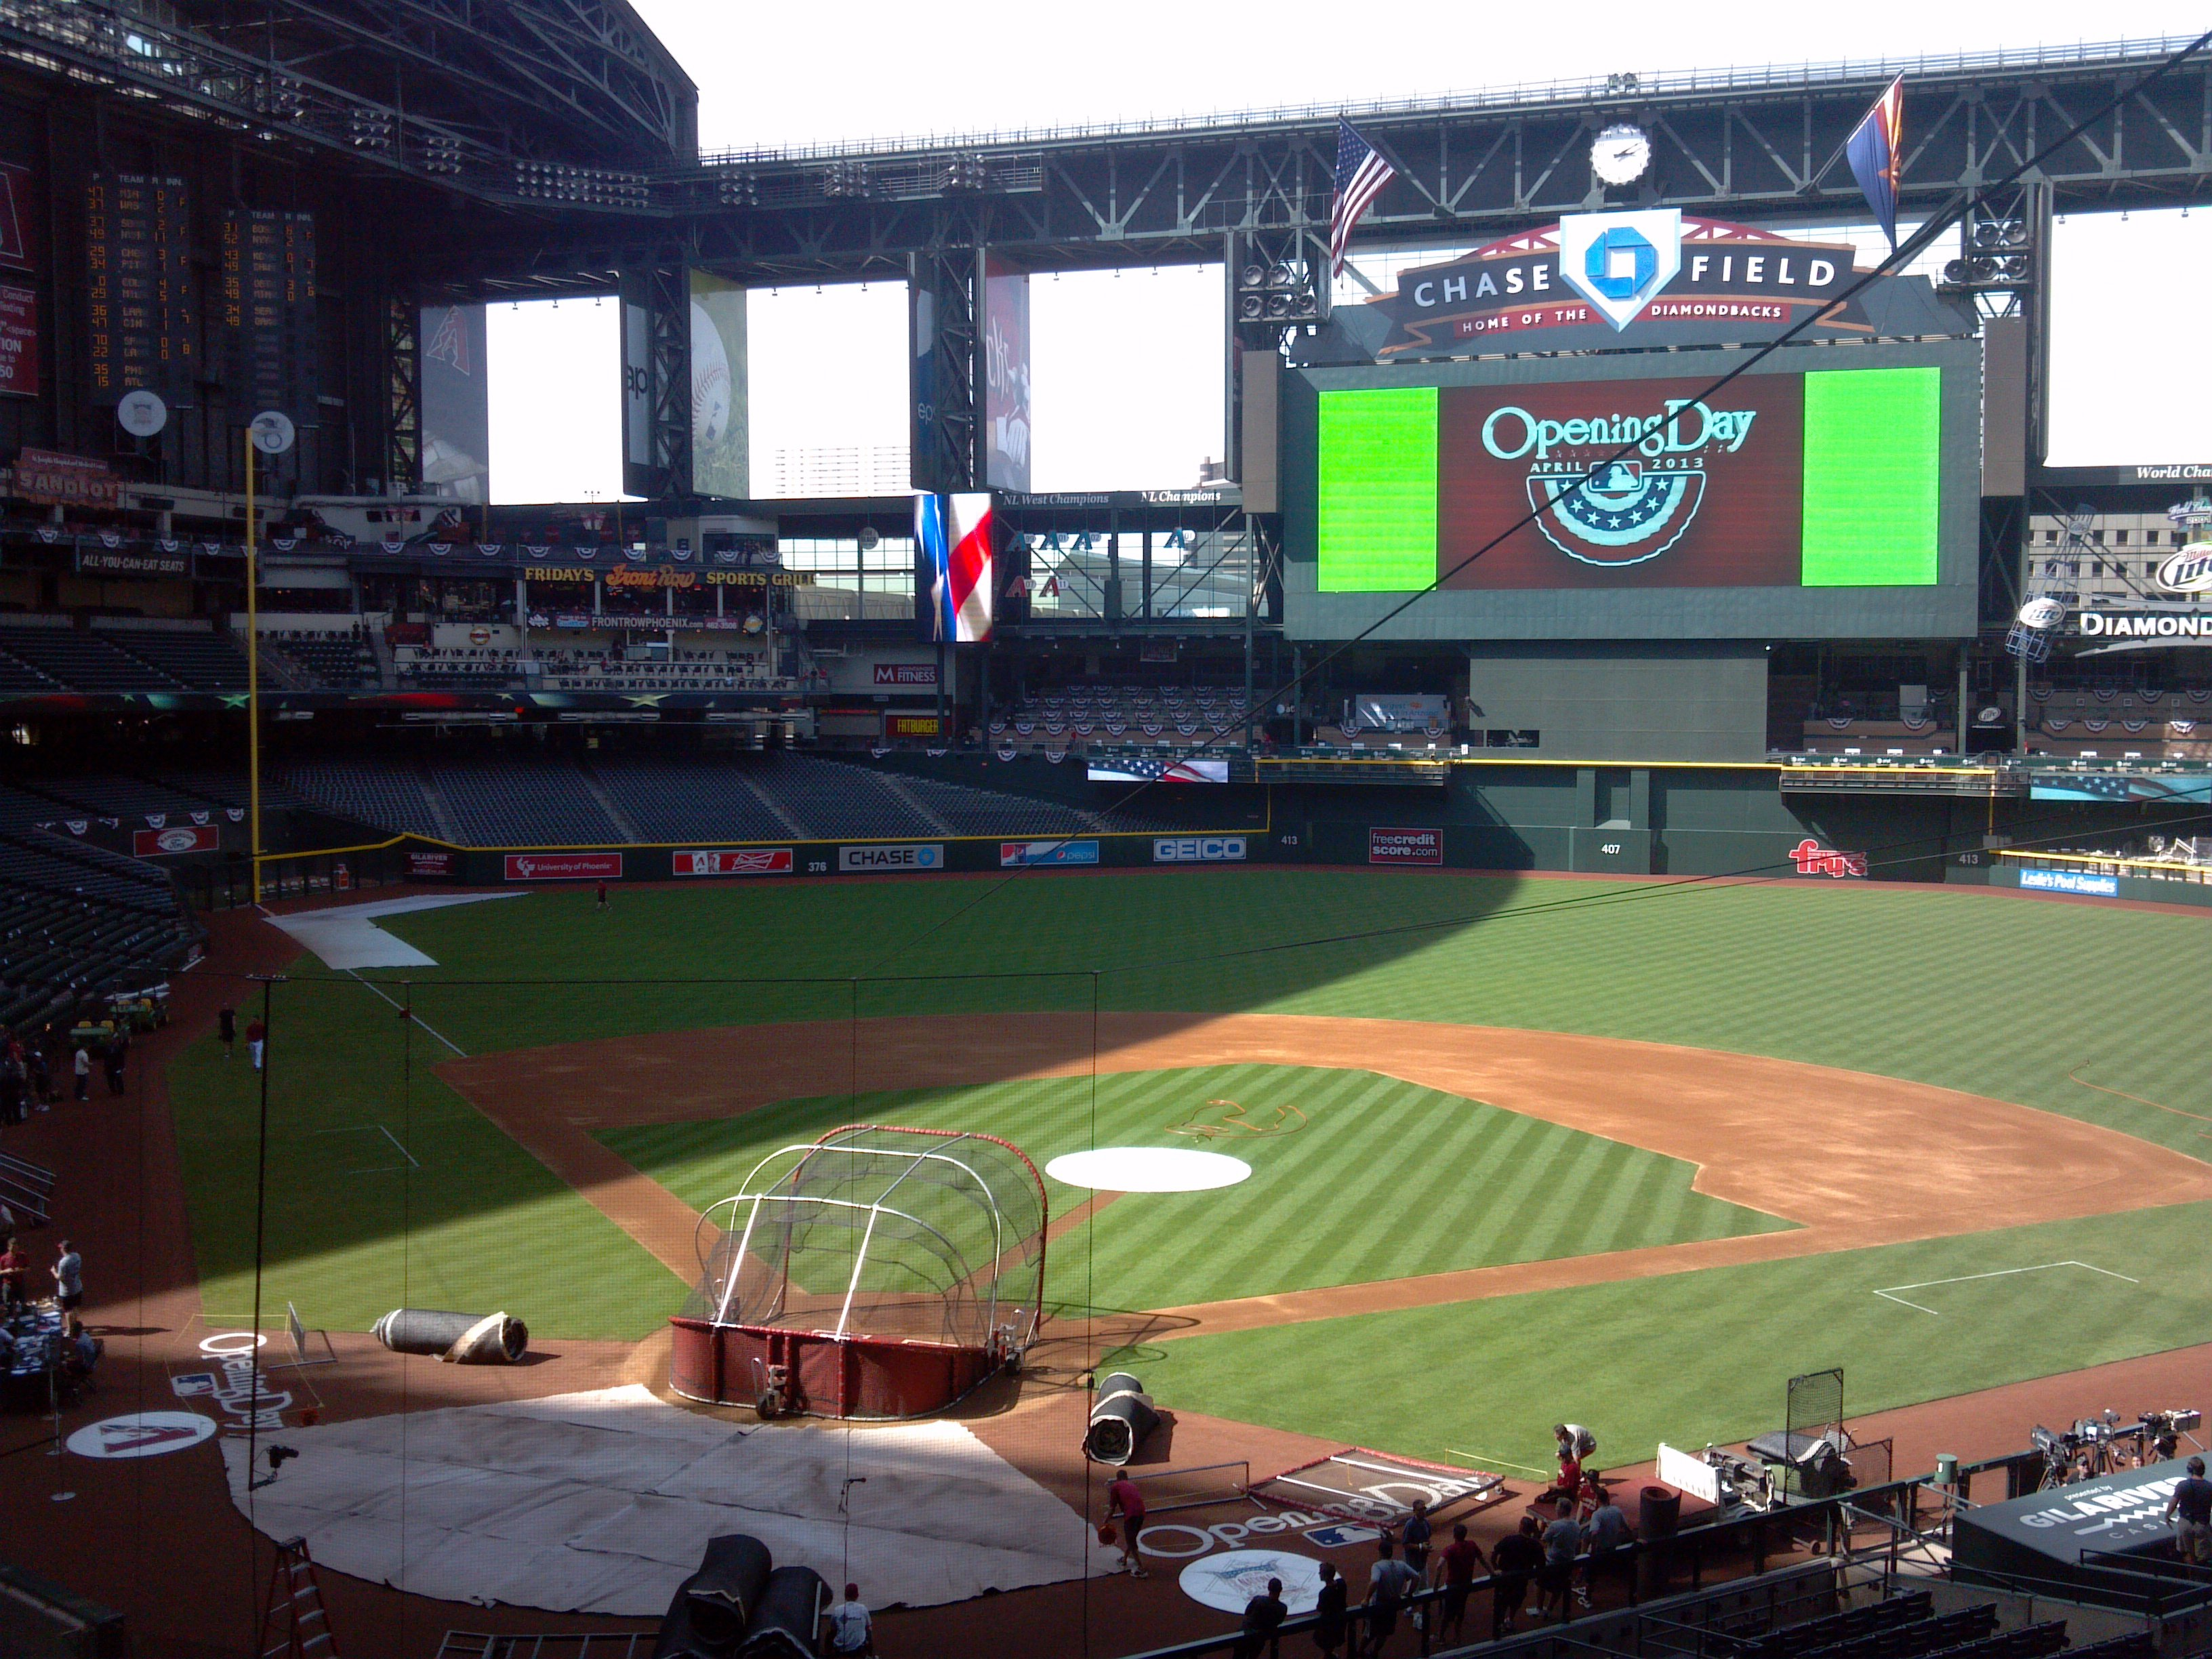 Chase Field on Opening Day (Source: Carlos Baca, CBS 5 News)